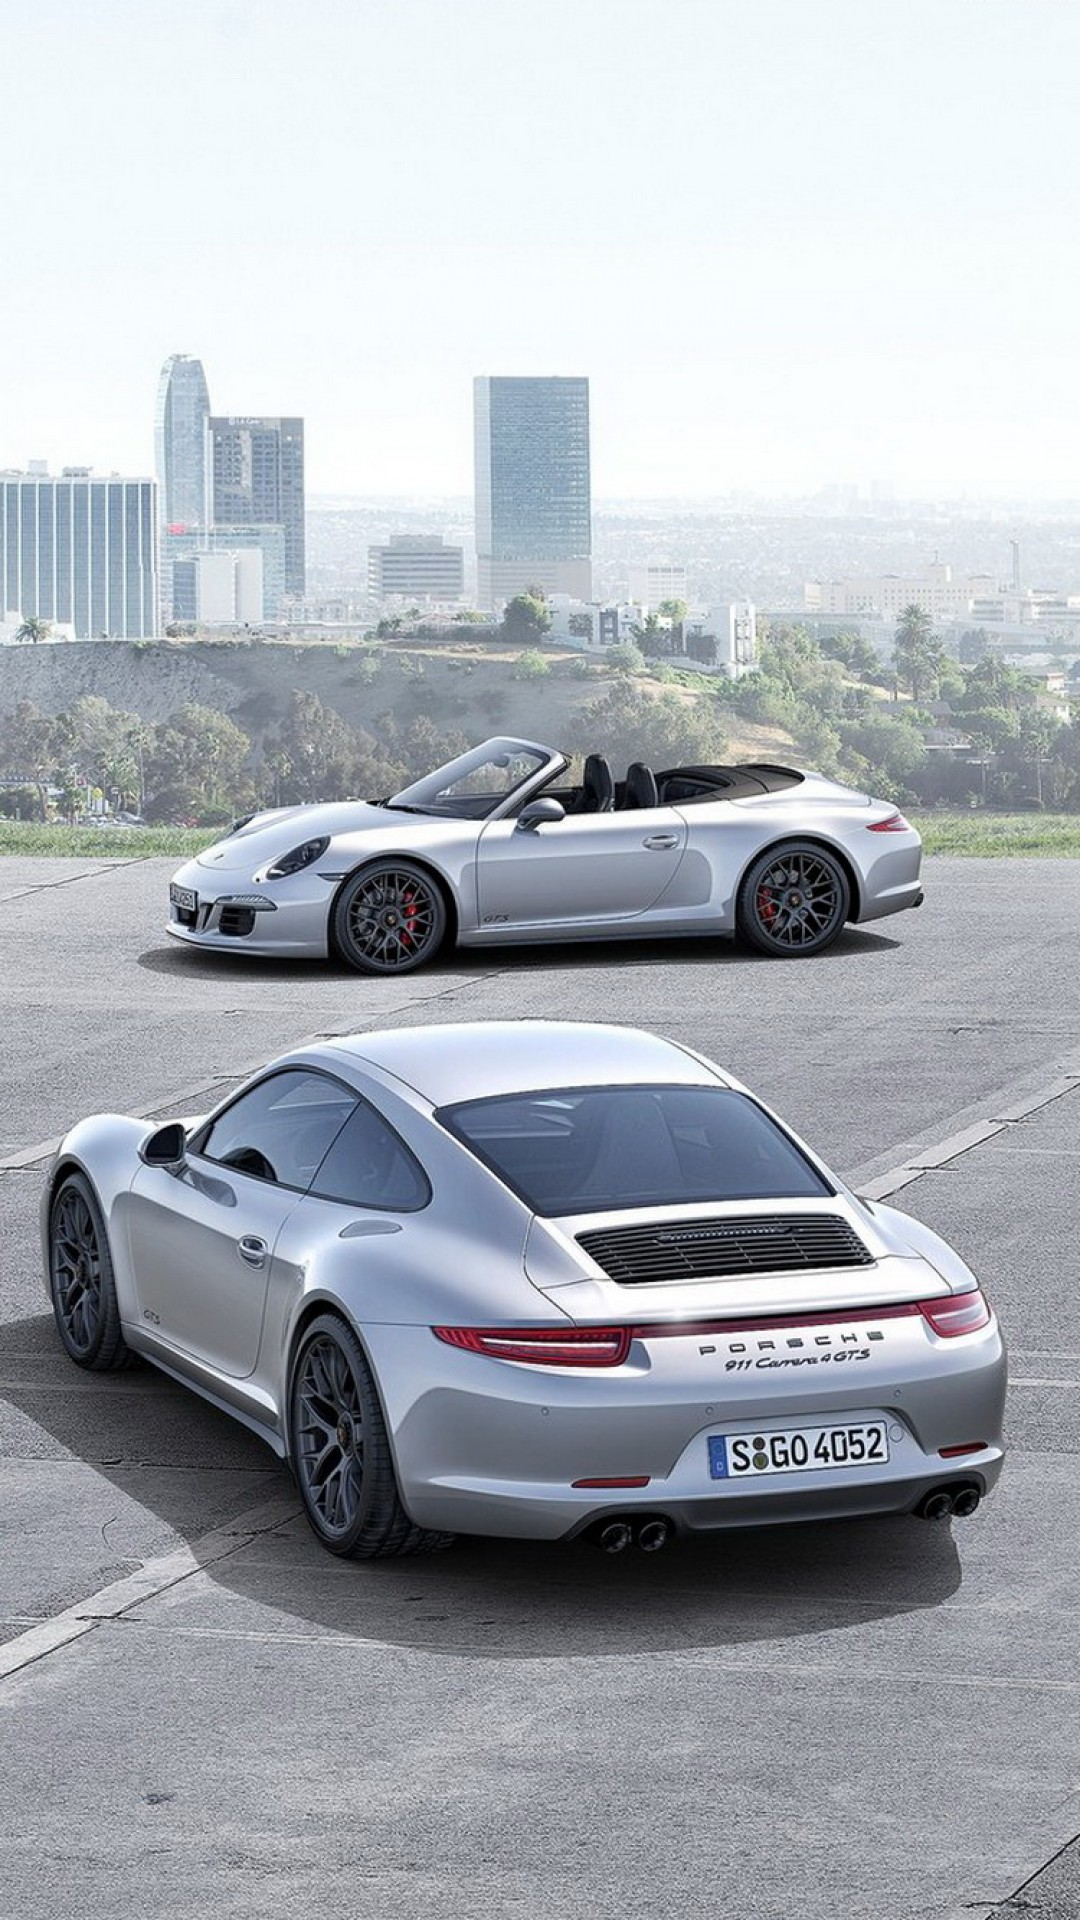 Porsche 911 Carrera GTS iPhone 6 Wallpaper iPhone6SWallpaperhdcom 1080x1920